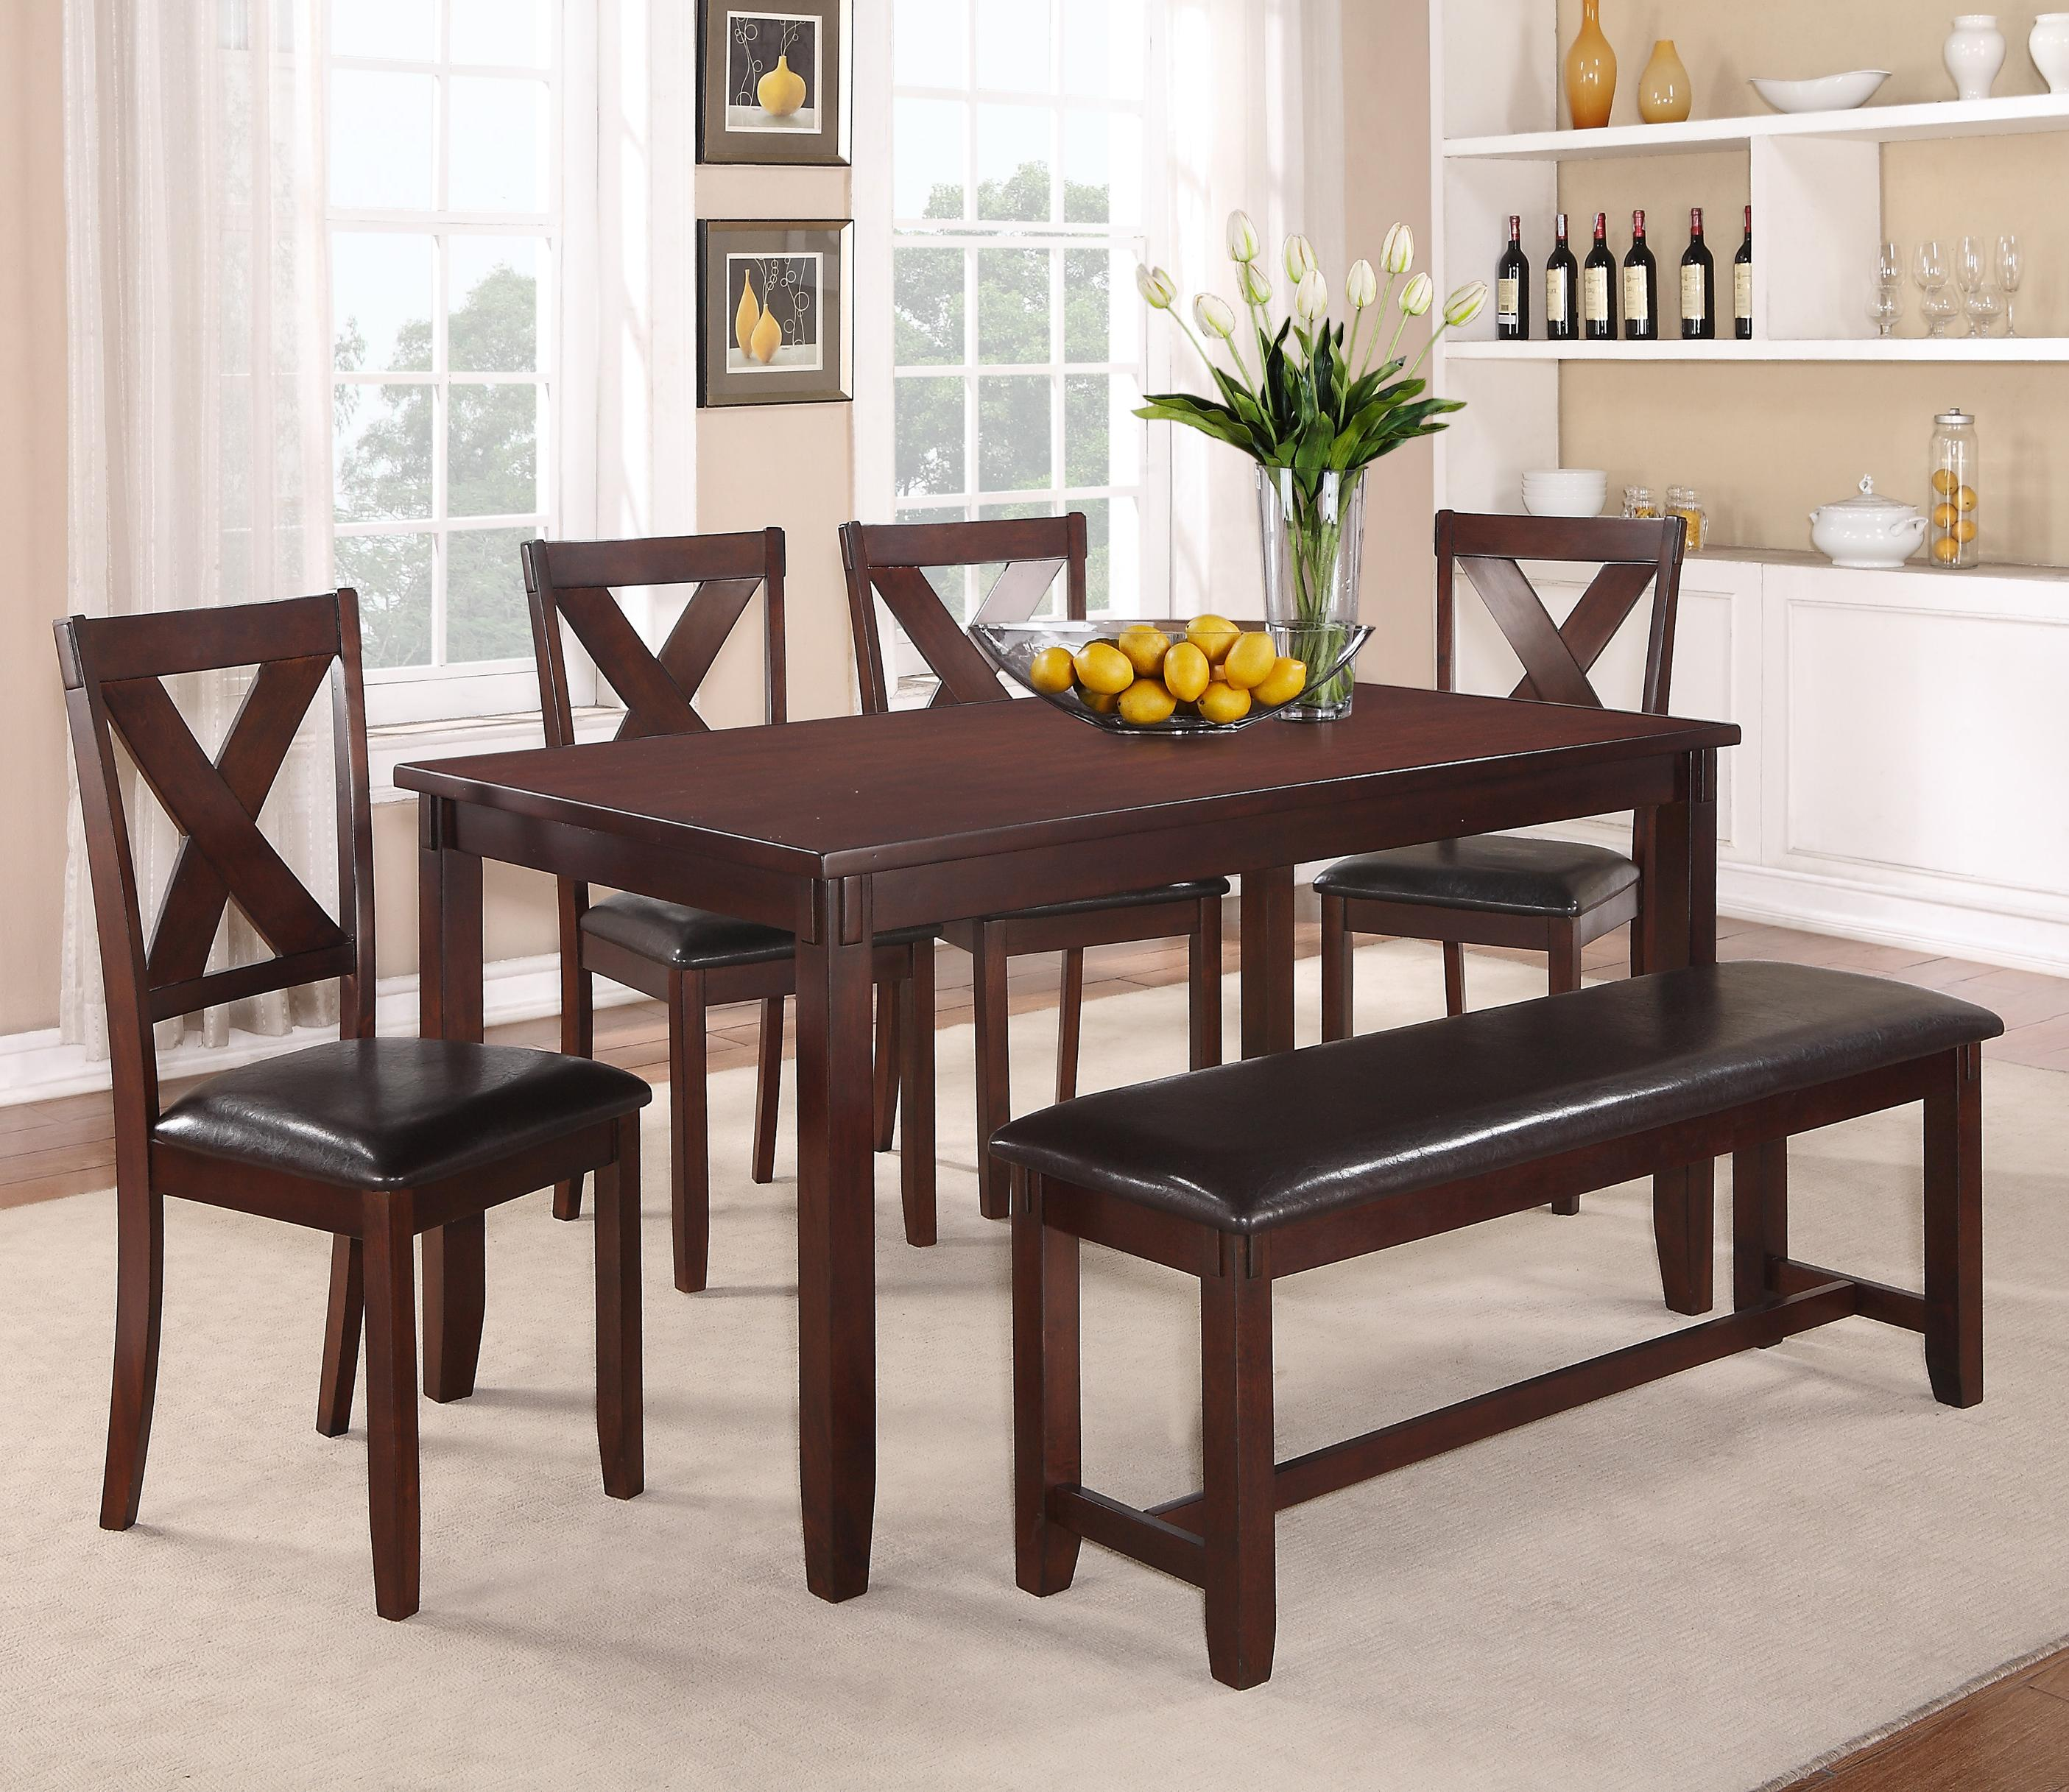 Crown Mark Clara 6 Piece Table and Chairs Set - Item Number: 2321Set+2321Bench